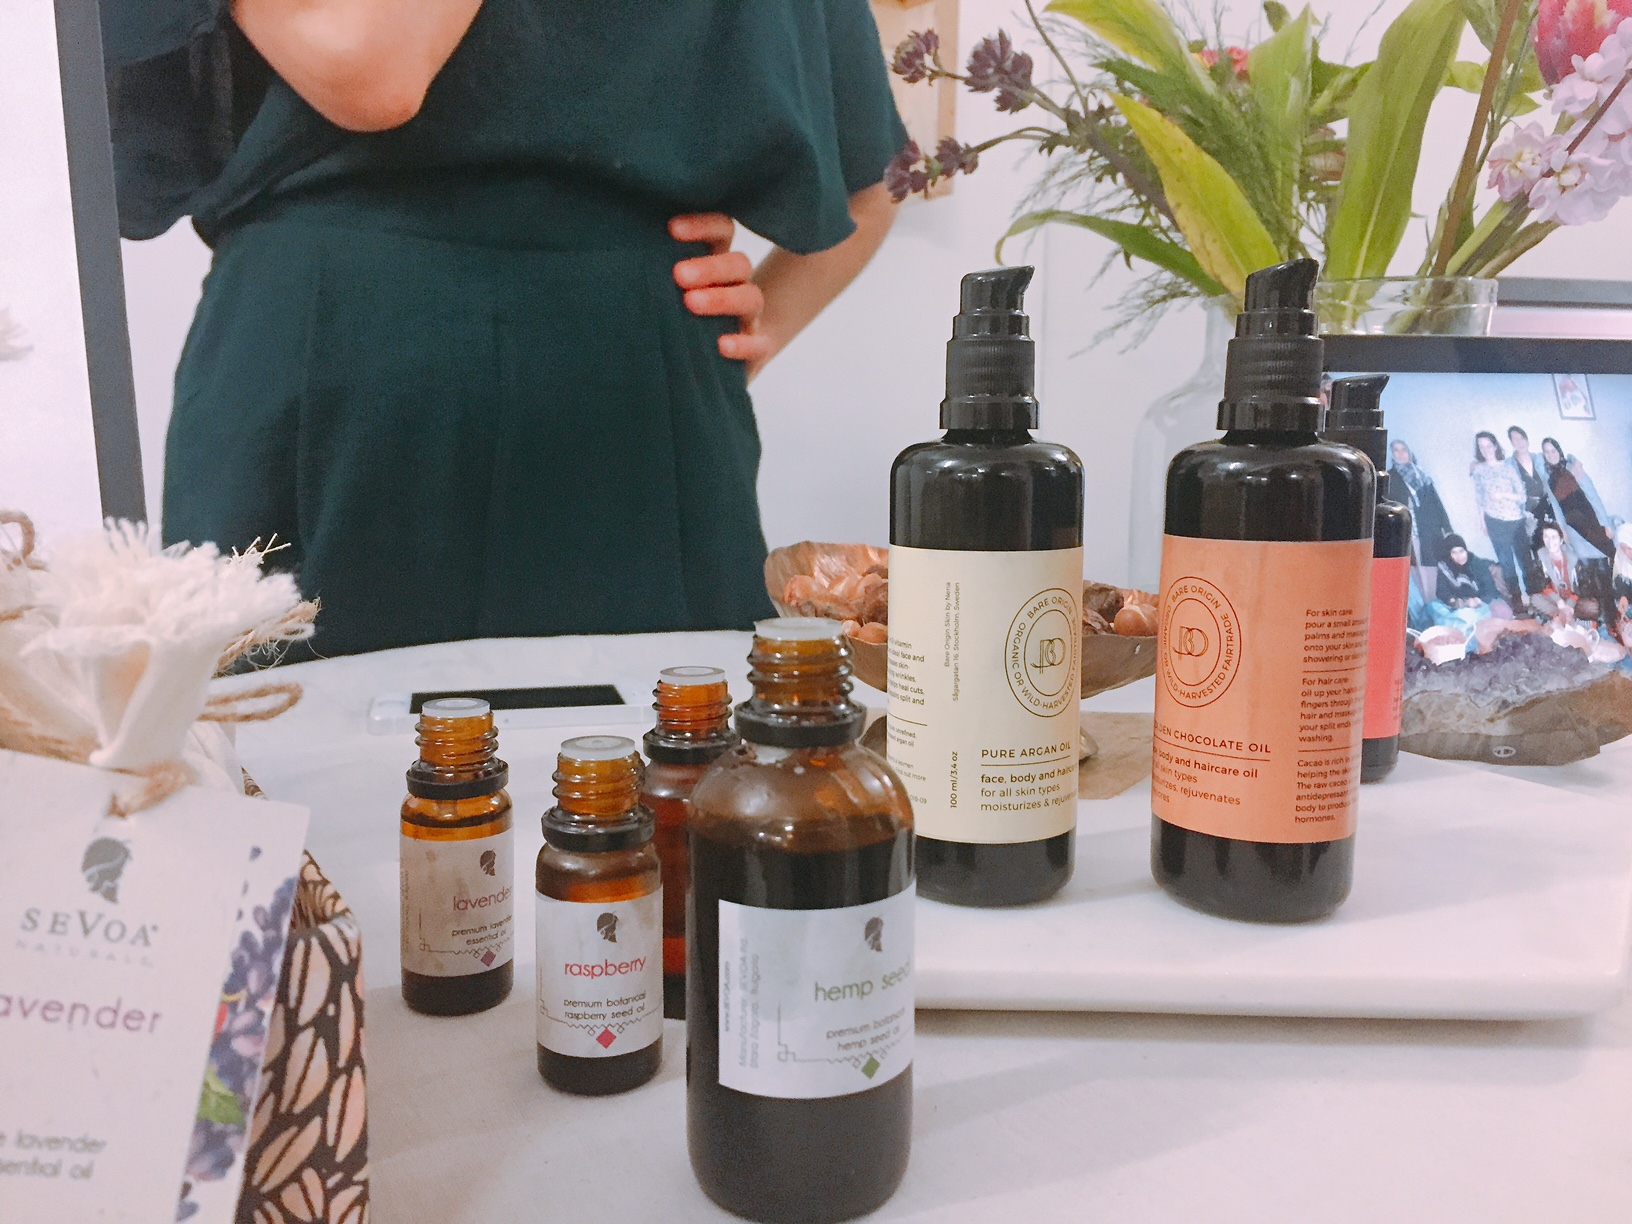 Bare Origin - Lovely meeting Nena from Bare Origin, drawn to her passion about sourcing the best for her oils.This particular rosehip oil is a must-have for your daily routine.